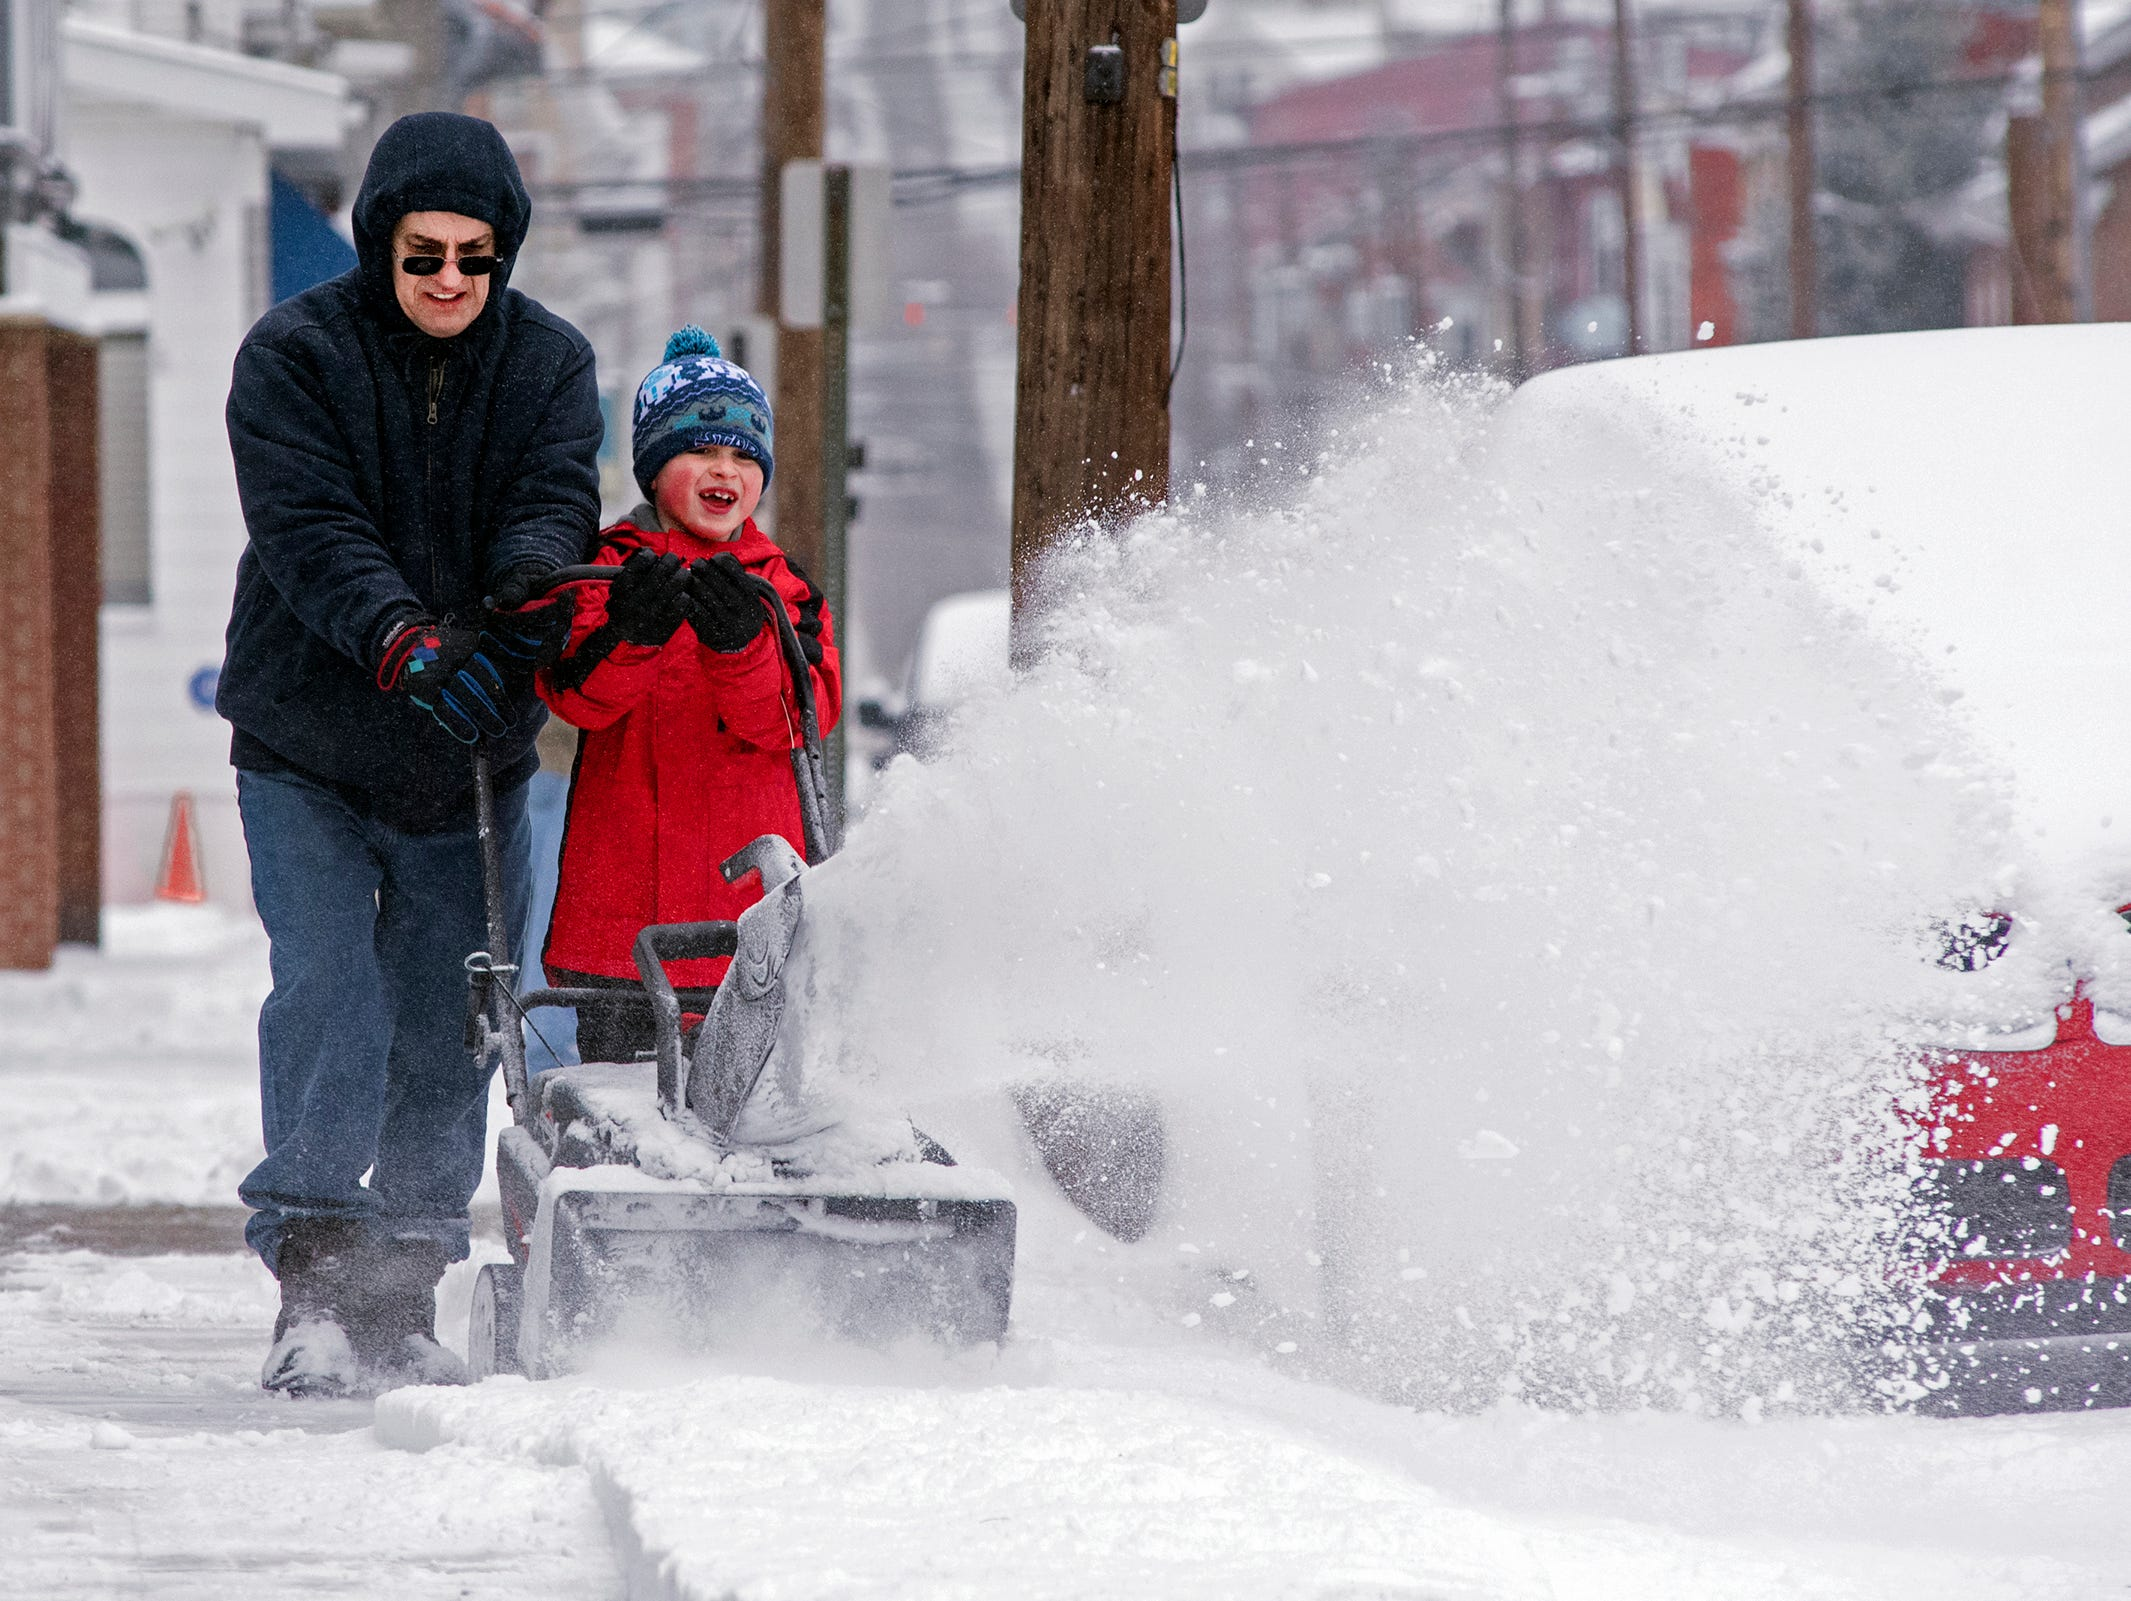 David Slodysko Sr. teaches his grandson, David Slodysko III, how to use a snow blower in Shamokin, Pa., on Feb. 20, 2019. About 4 inches of snow fell in central Pennsylvania.